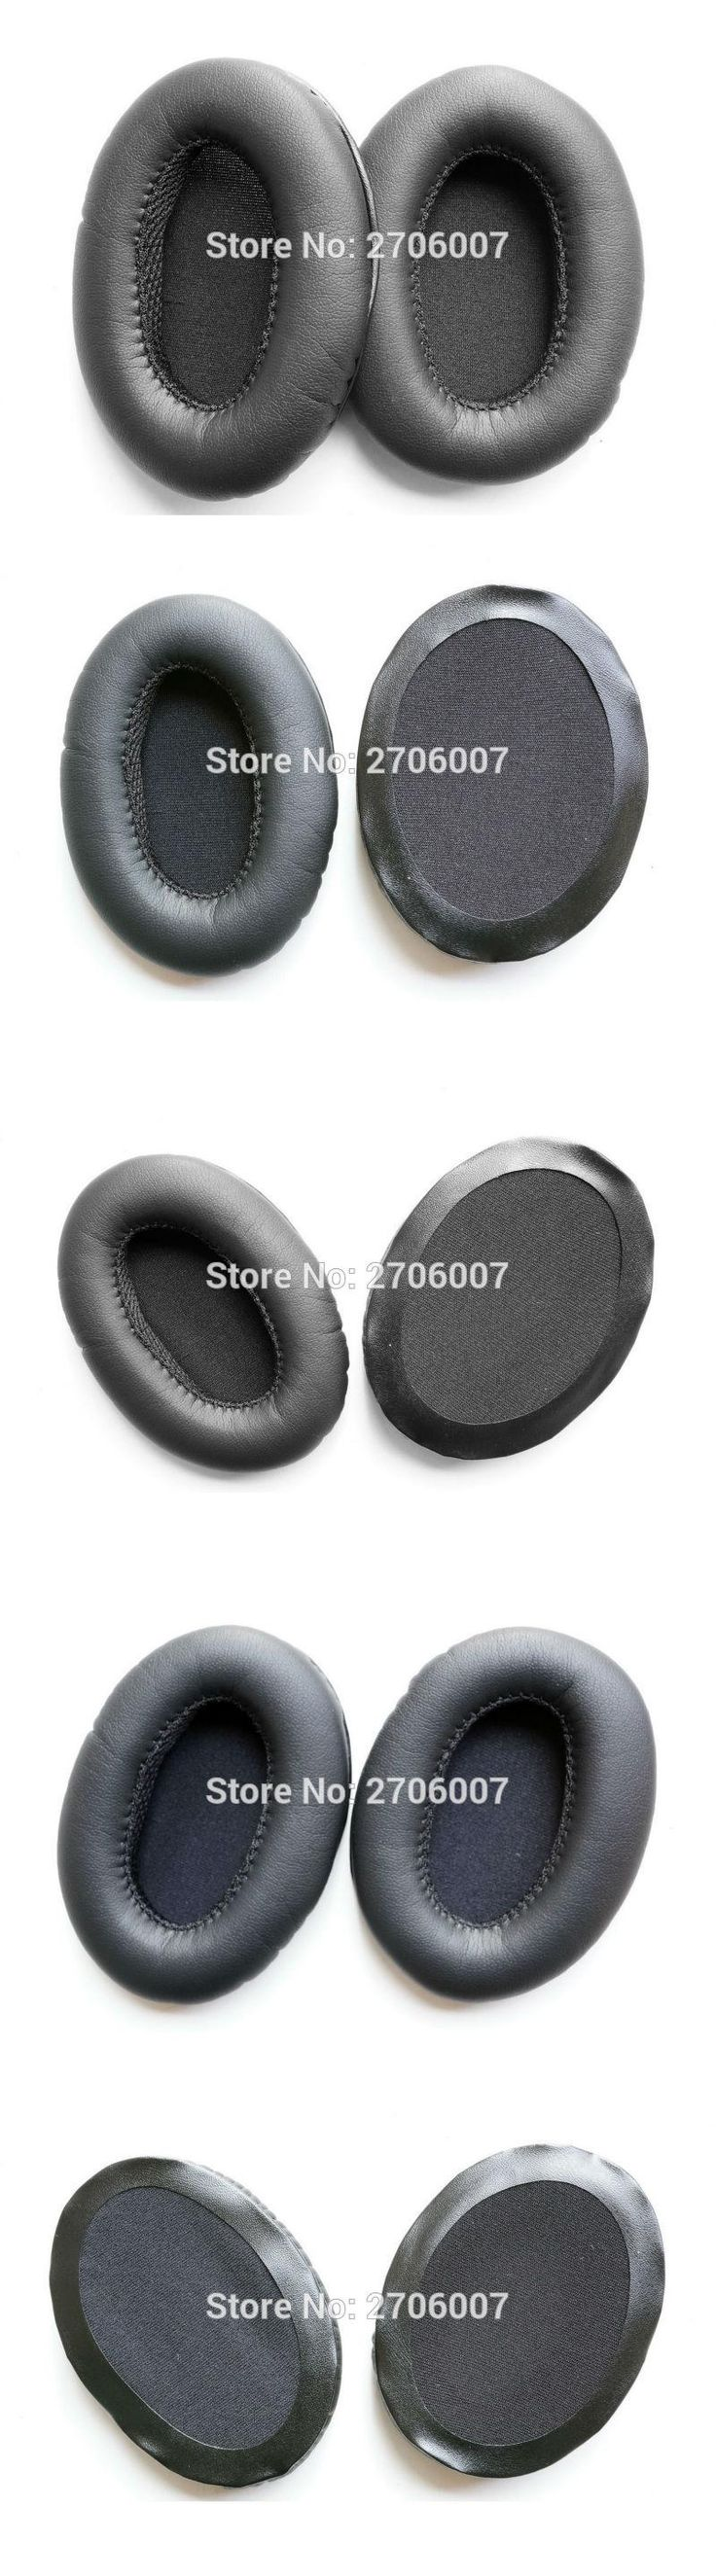 Replace cushion replacement cover for Monster beats studio headphones(headset) Boutique Lossless sound quality earmuffs/Ear pads